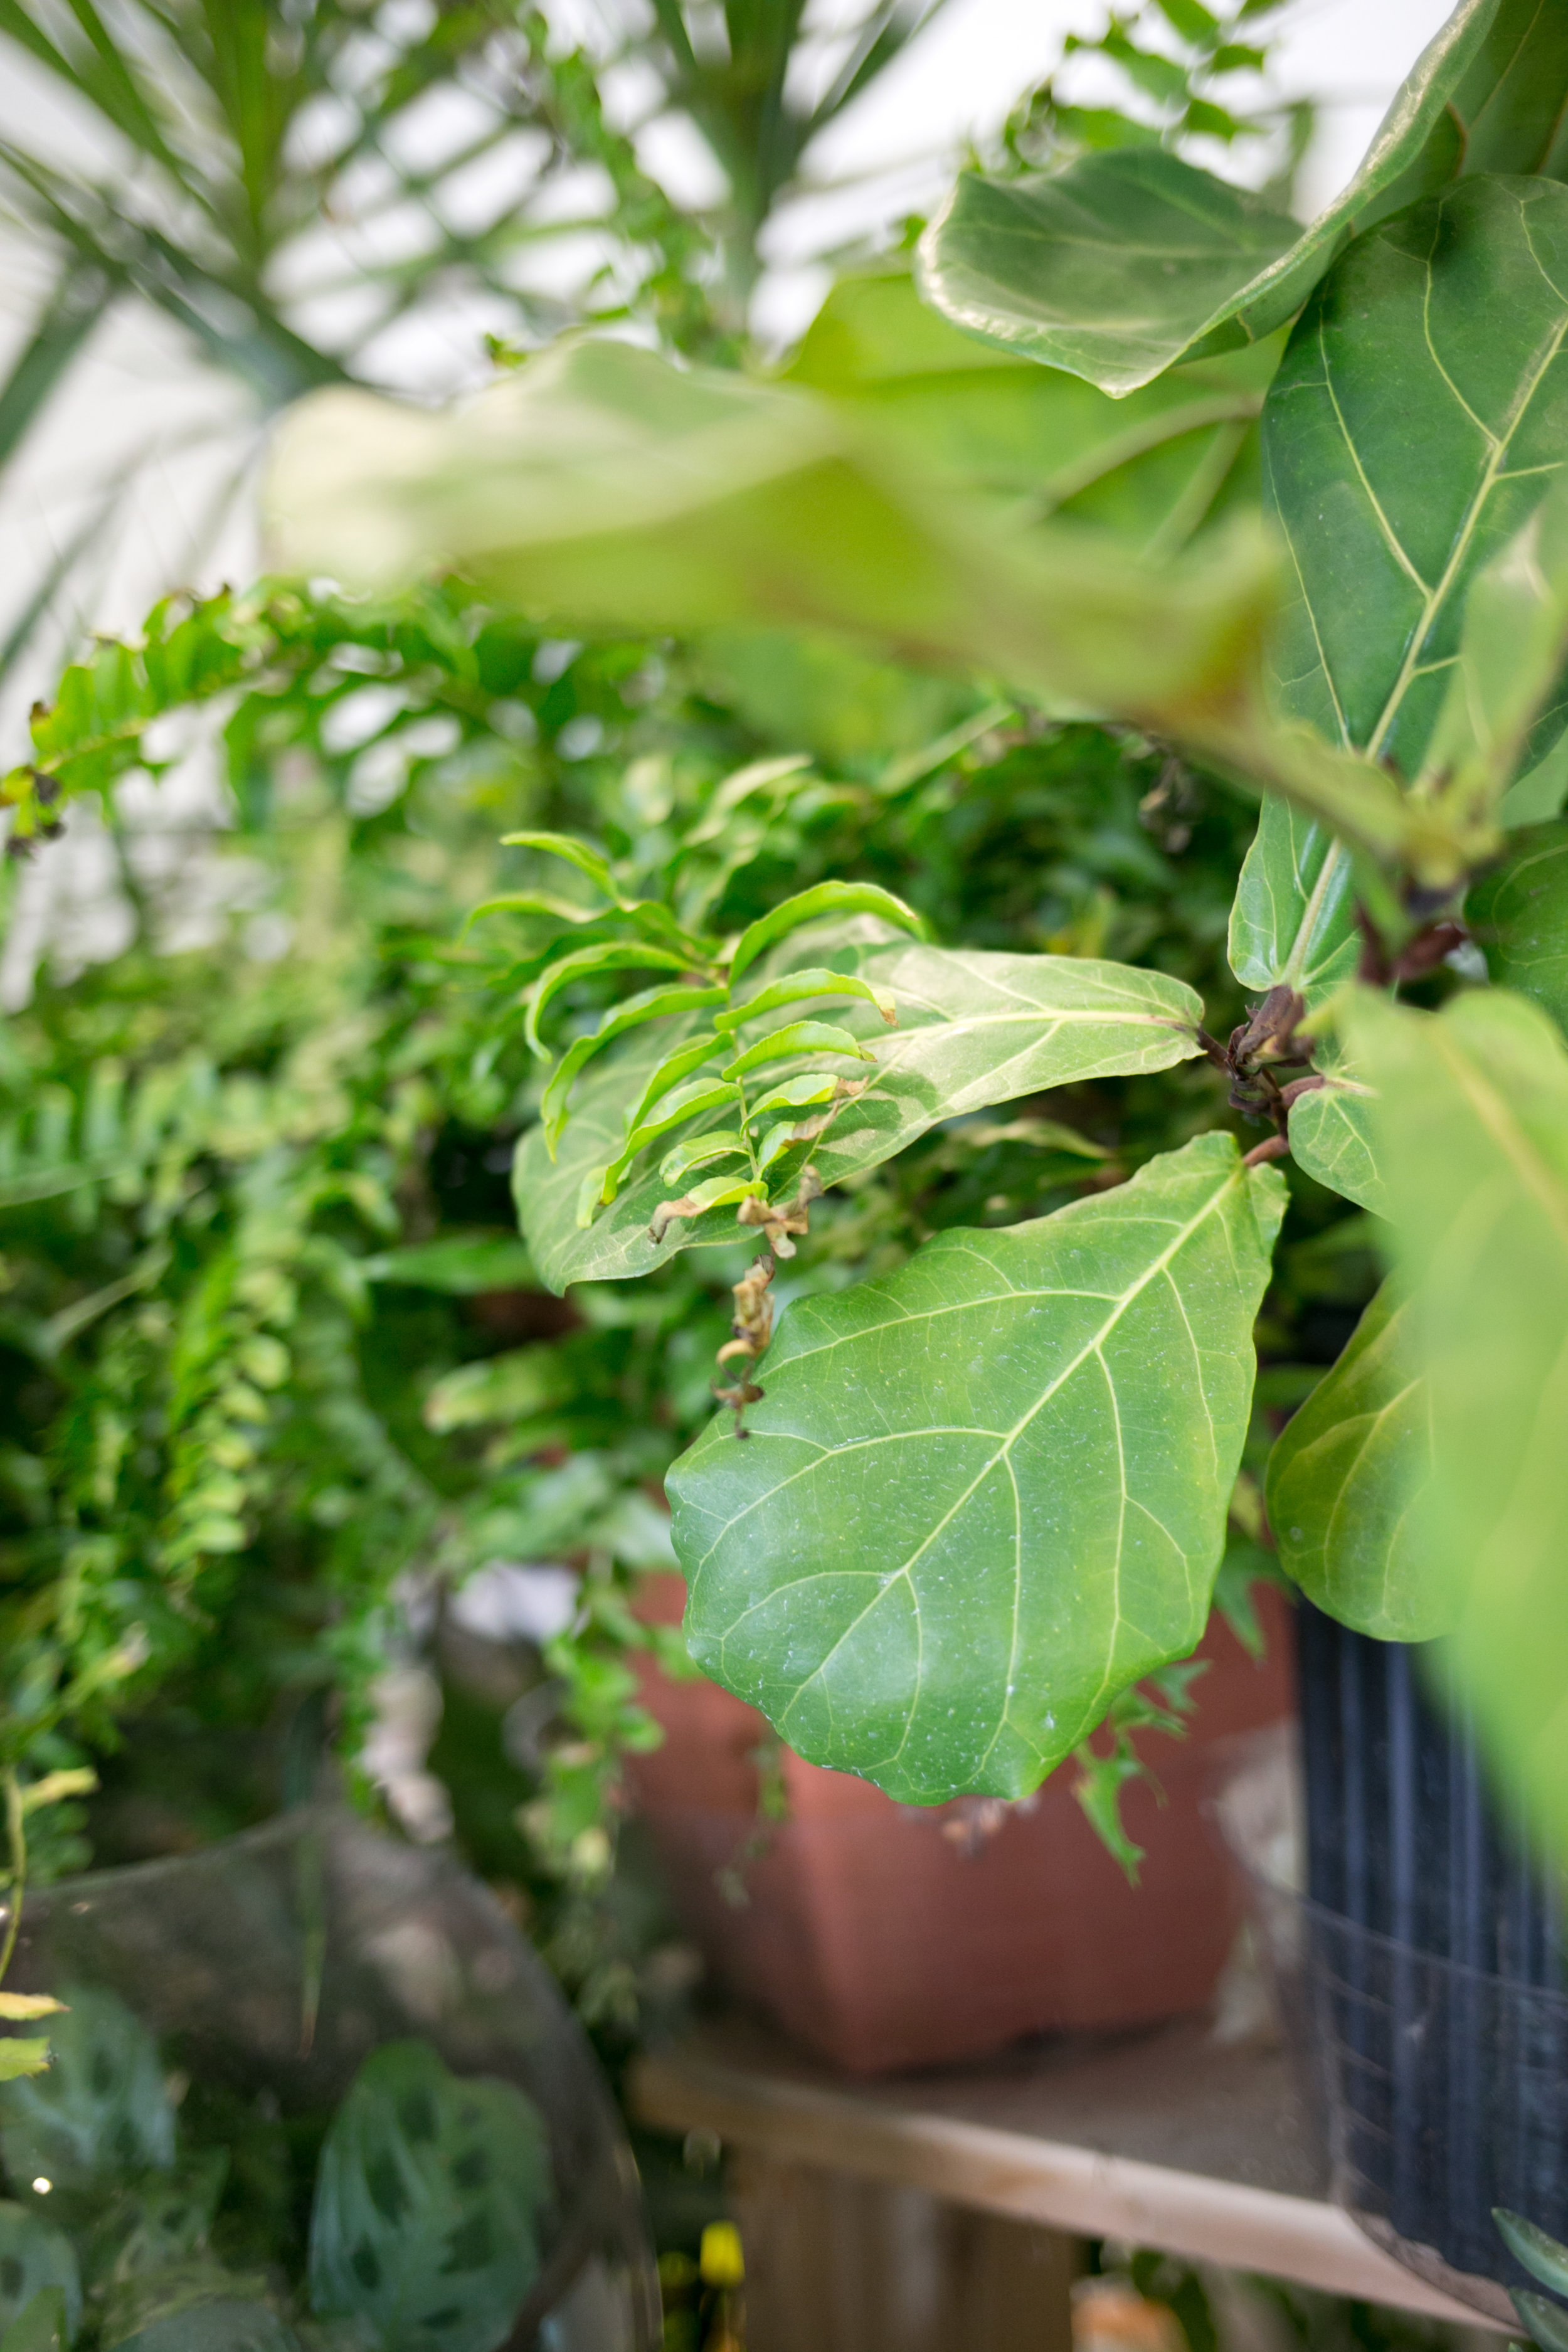 Dusting leaves often helps plants breathe and carry out photosynthesis.